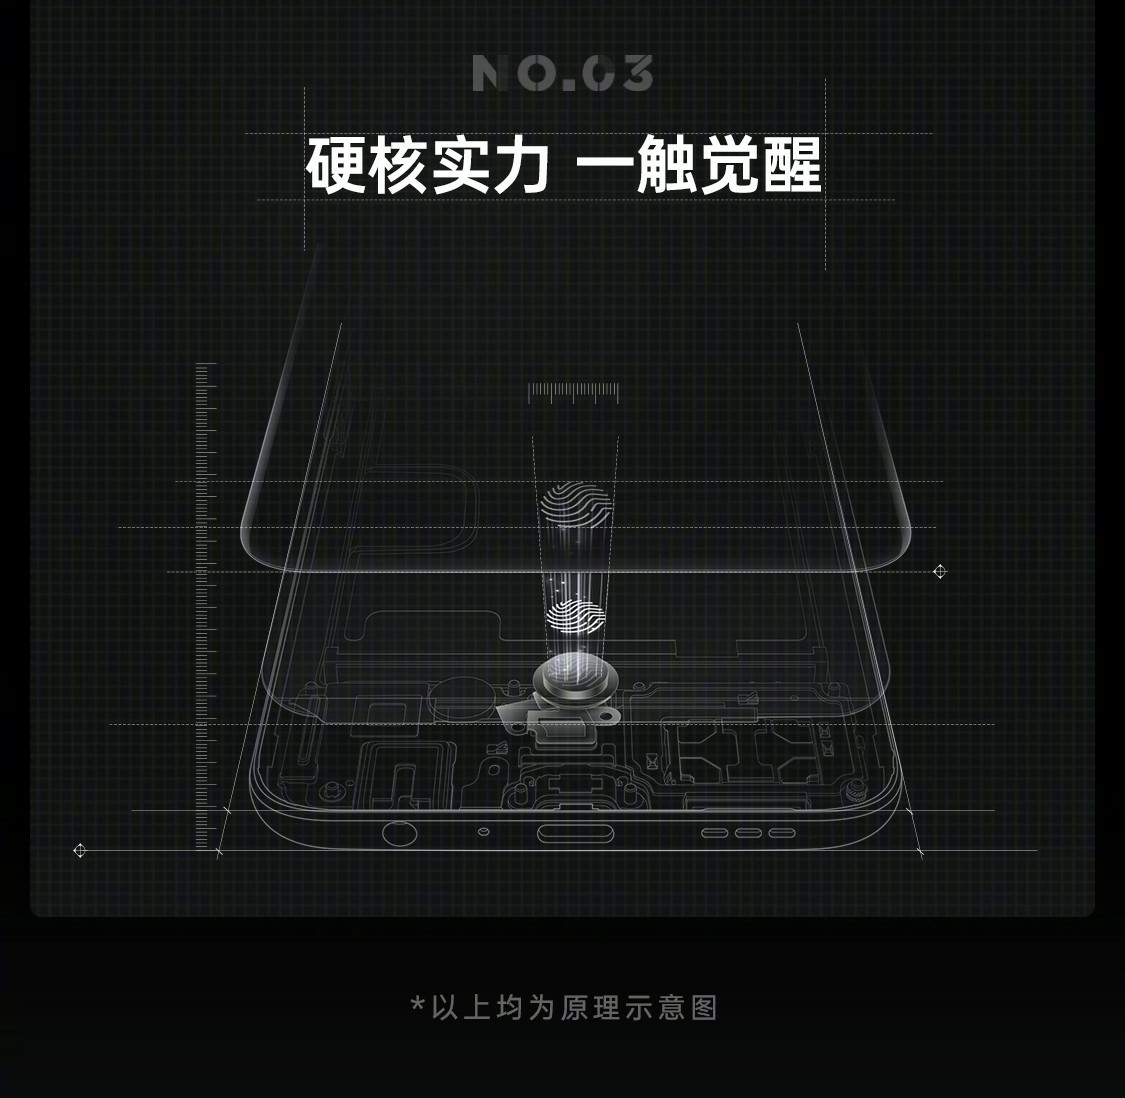 Oppo K3 features